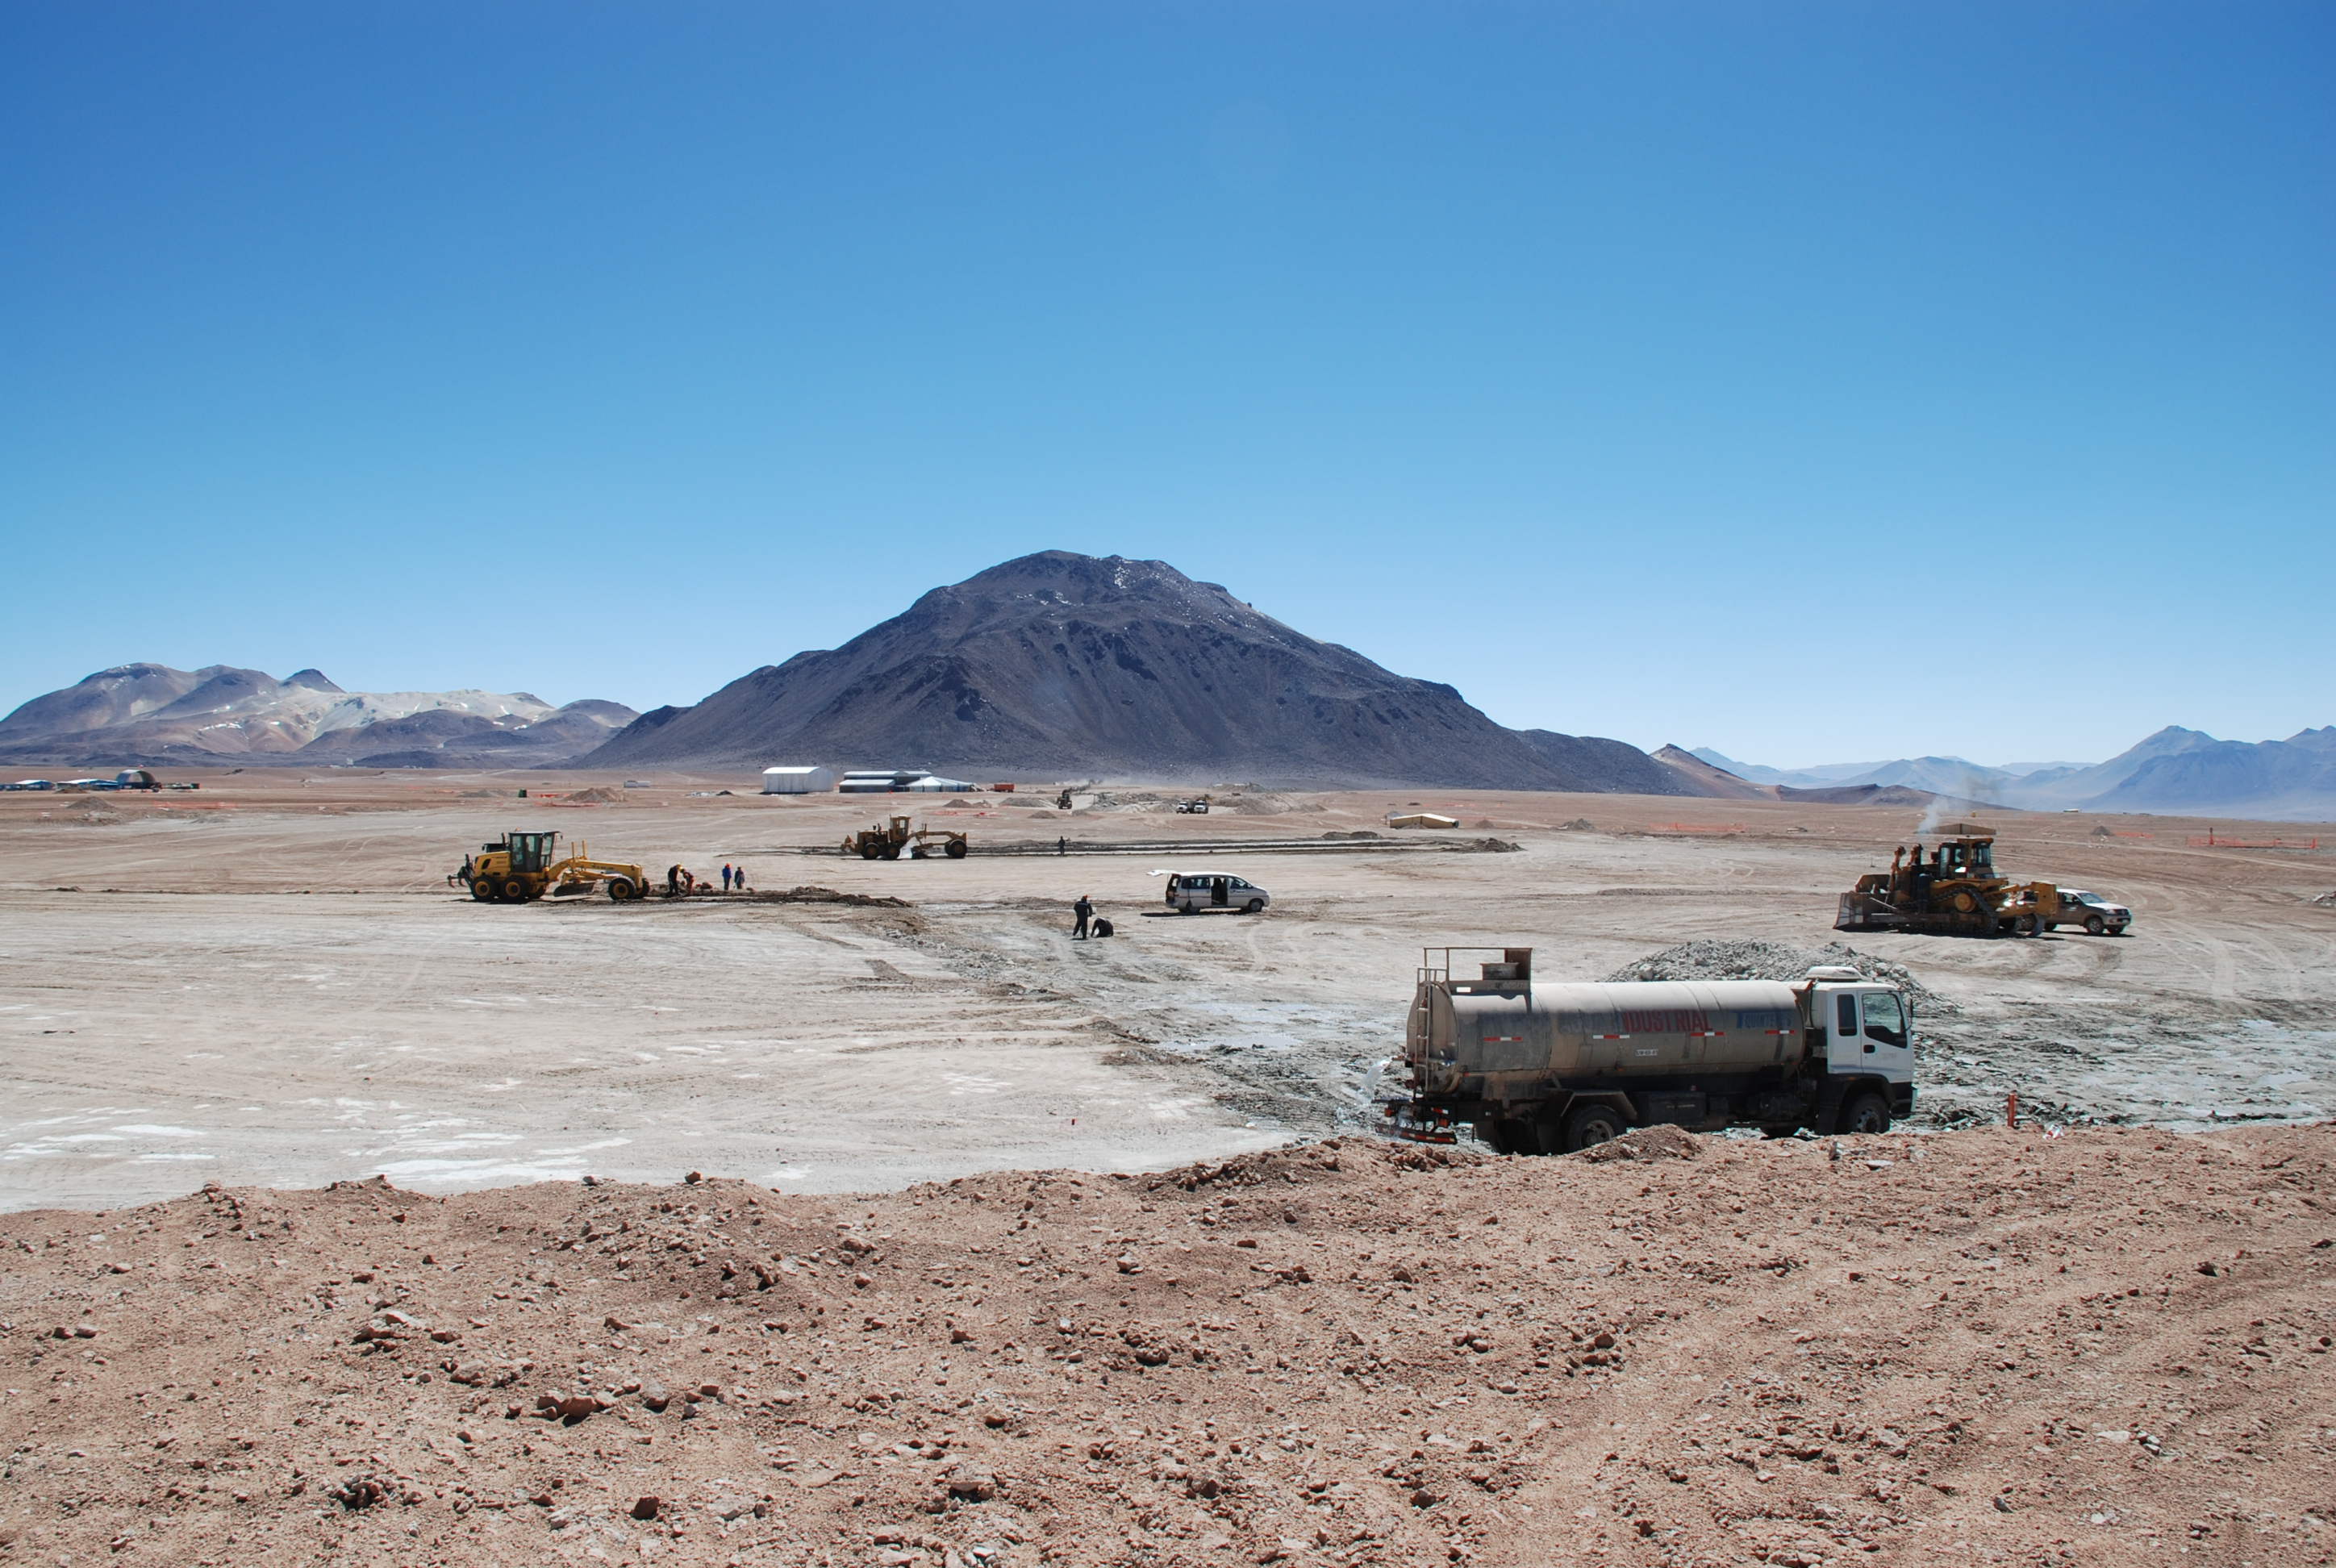 The Chajnantor Site of the ALMA Central Cluster (looking roughly North, with the AOS TB in the background) in August 2008